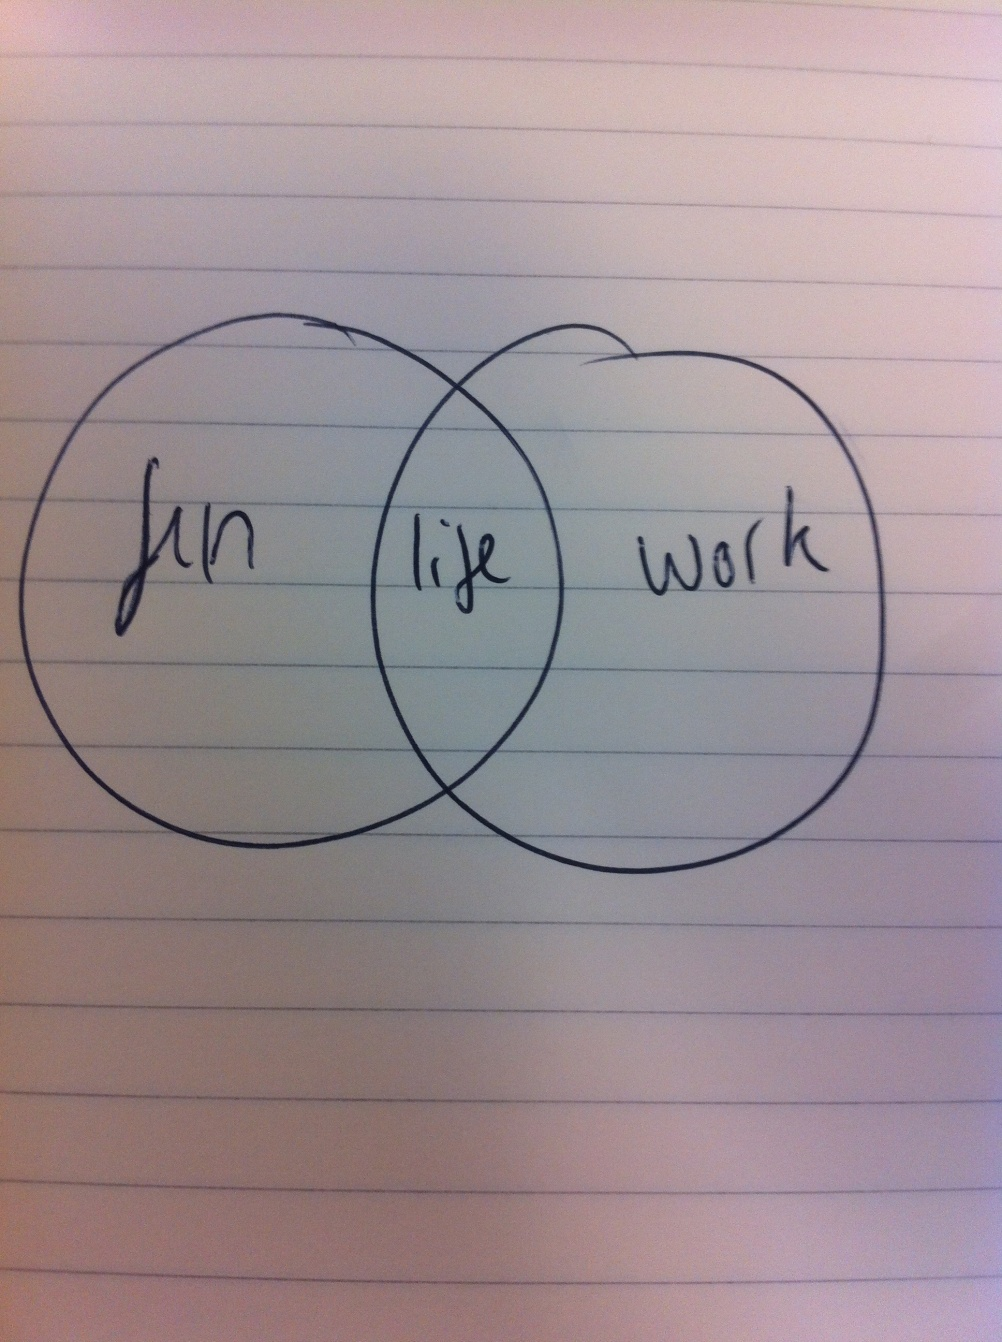 Jon Burgerman's Venn diagram about the balance between life, work and fun